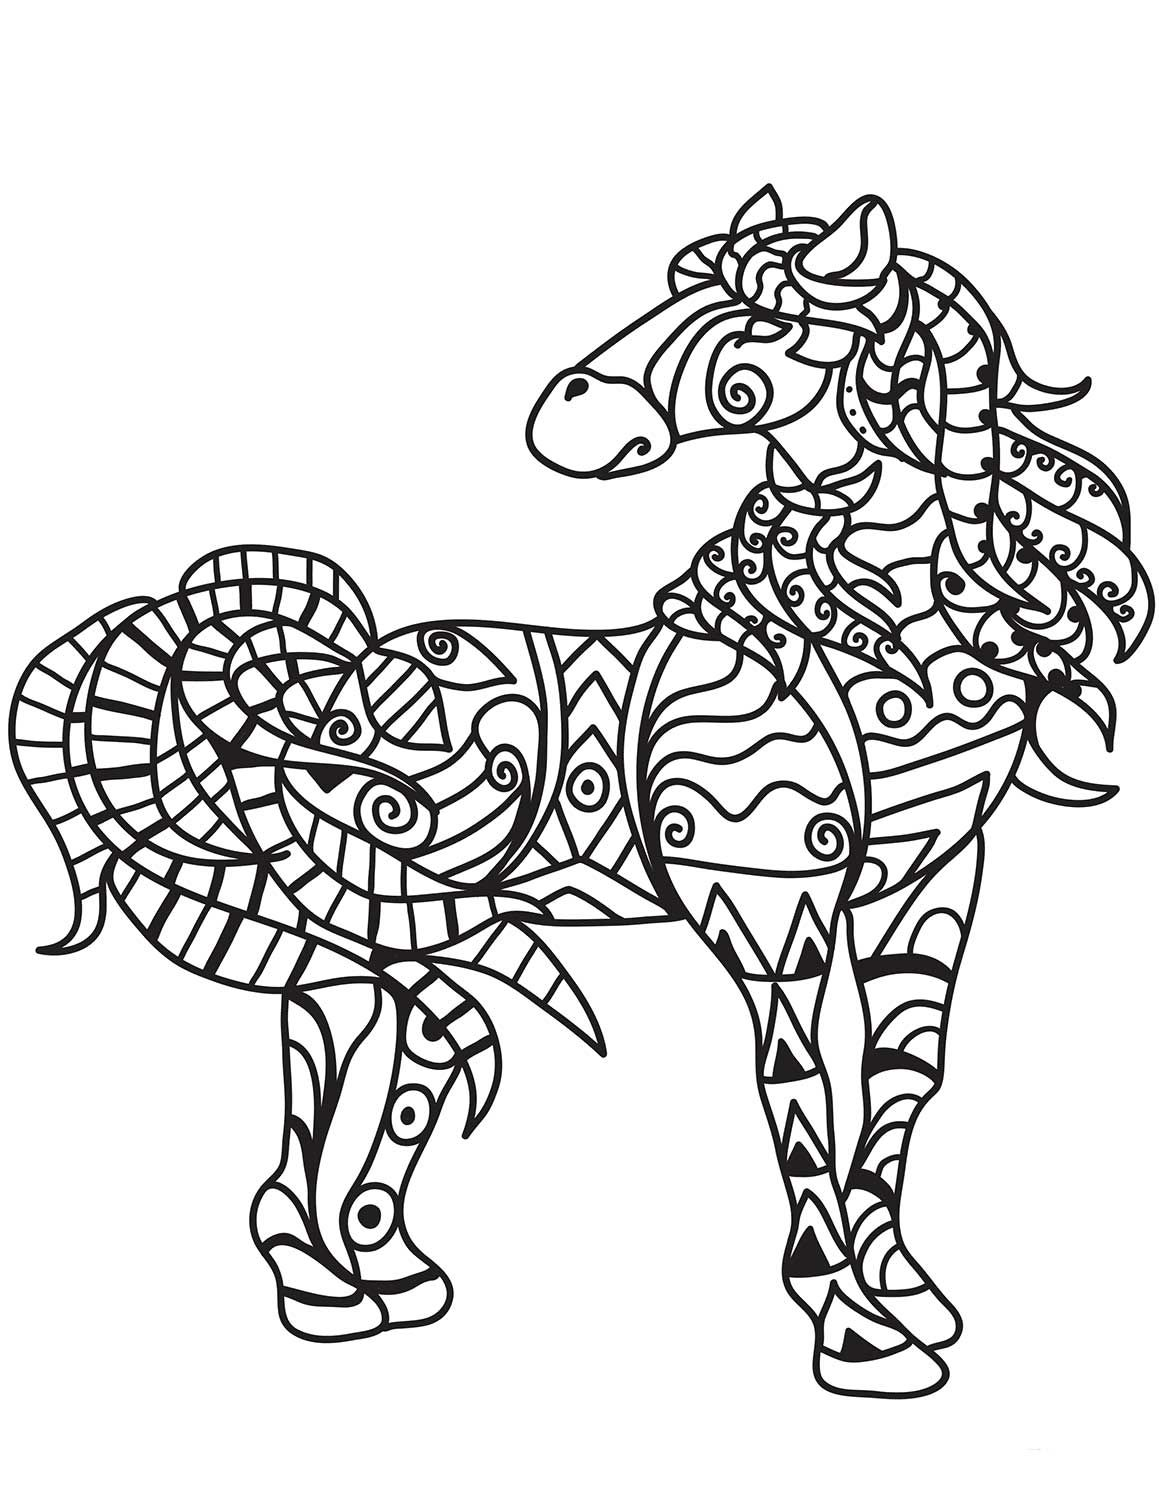 Horse Zentangle Coloring Page Horse Coloring Pages Animal Coloring Pages Horse Coloring